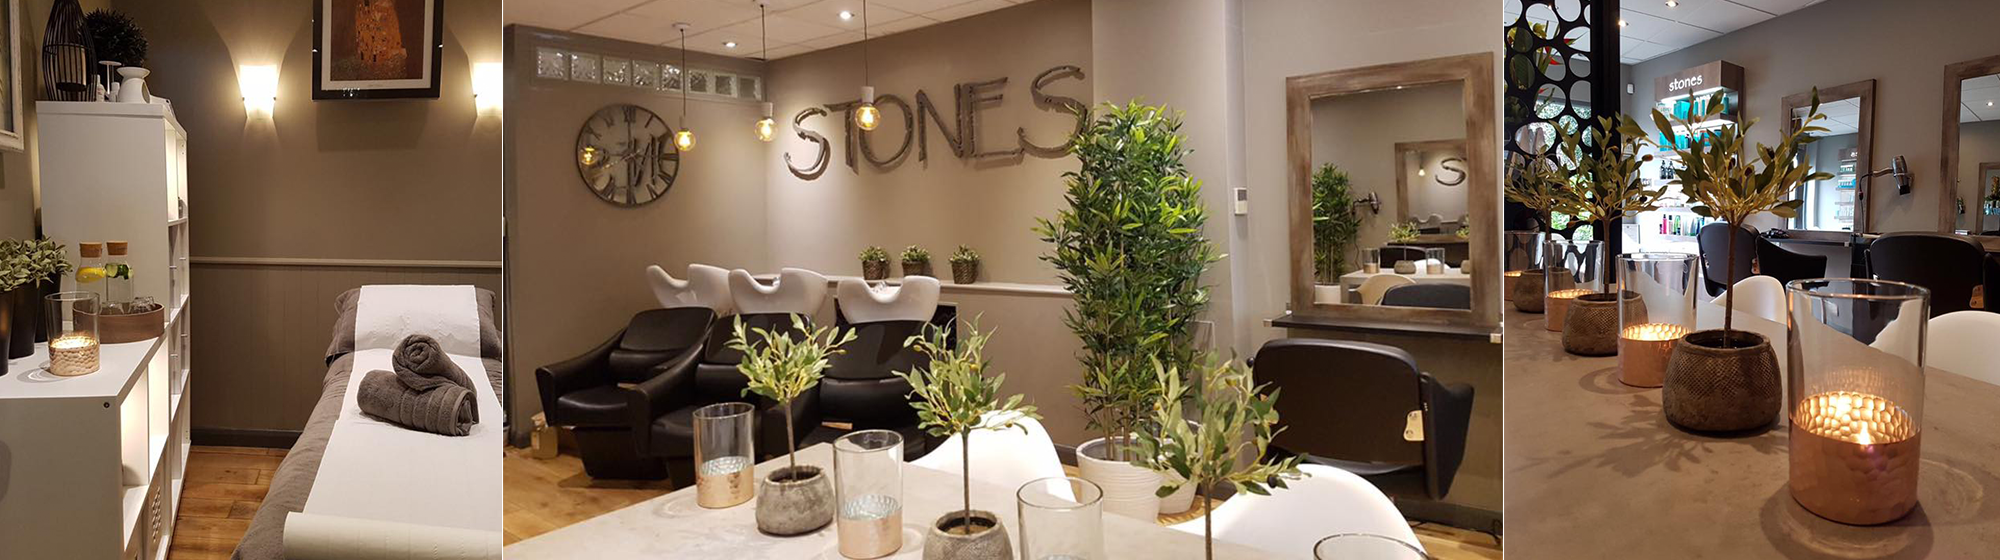 stones-hair-and-beauty-salon-in-quorn